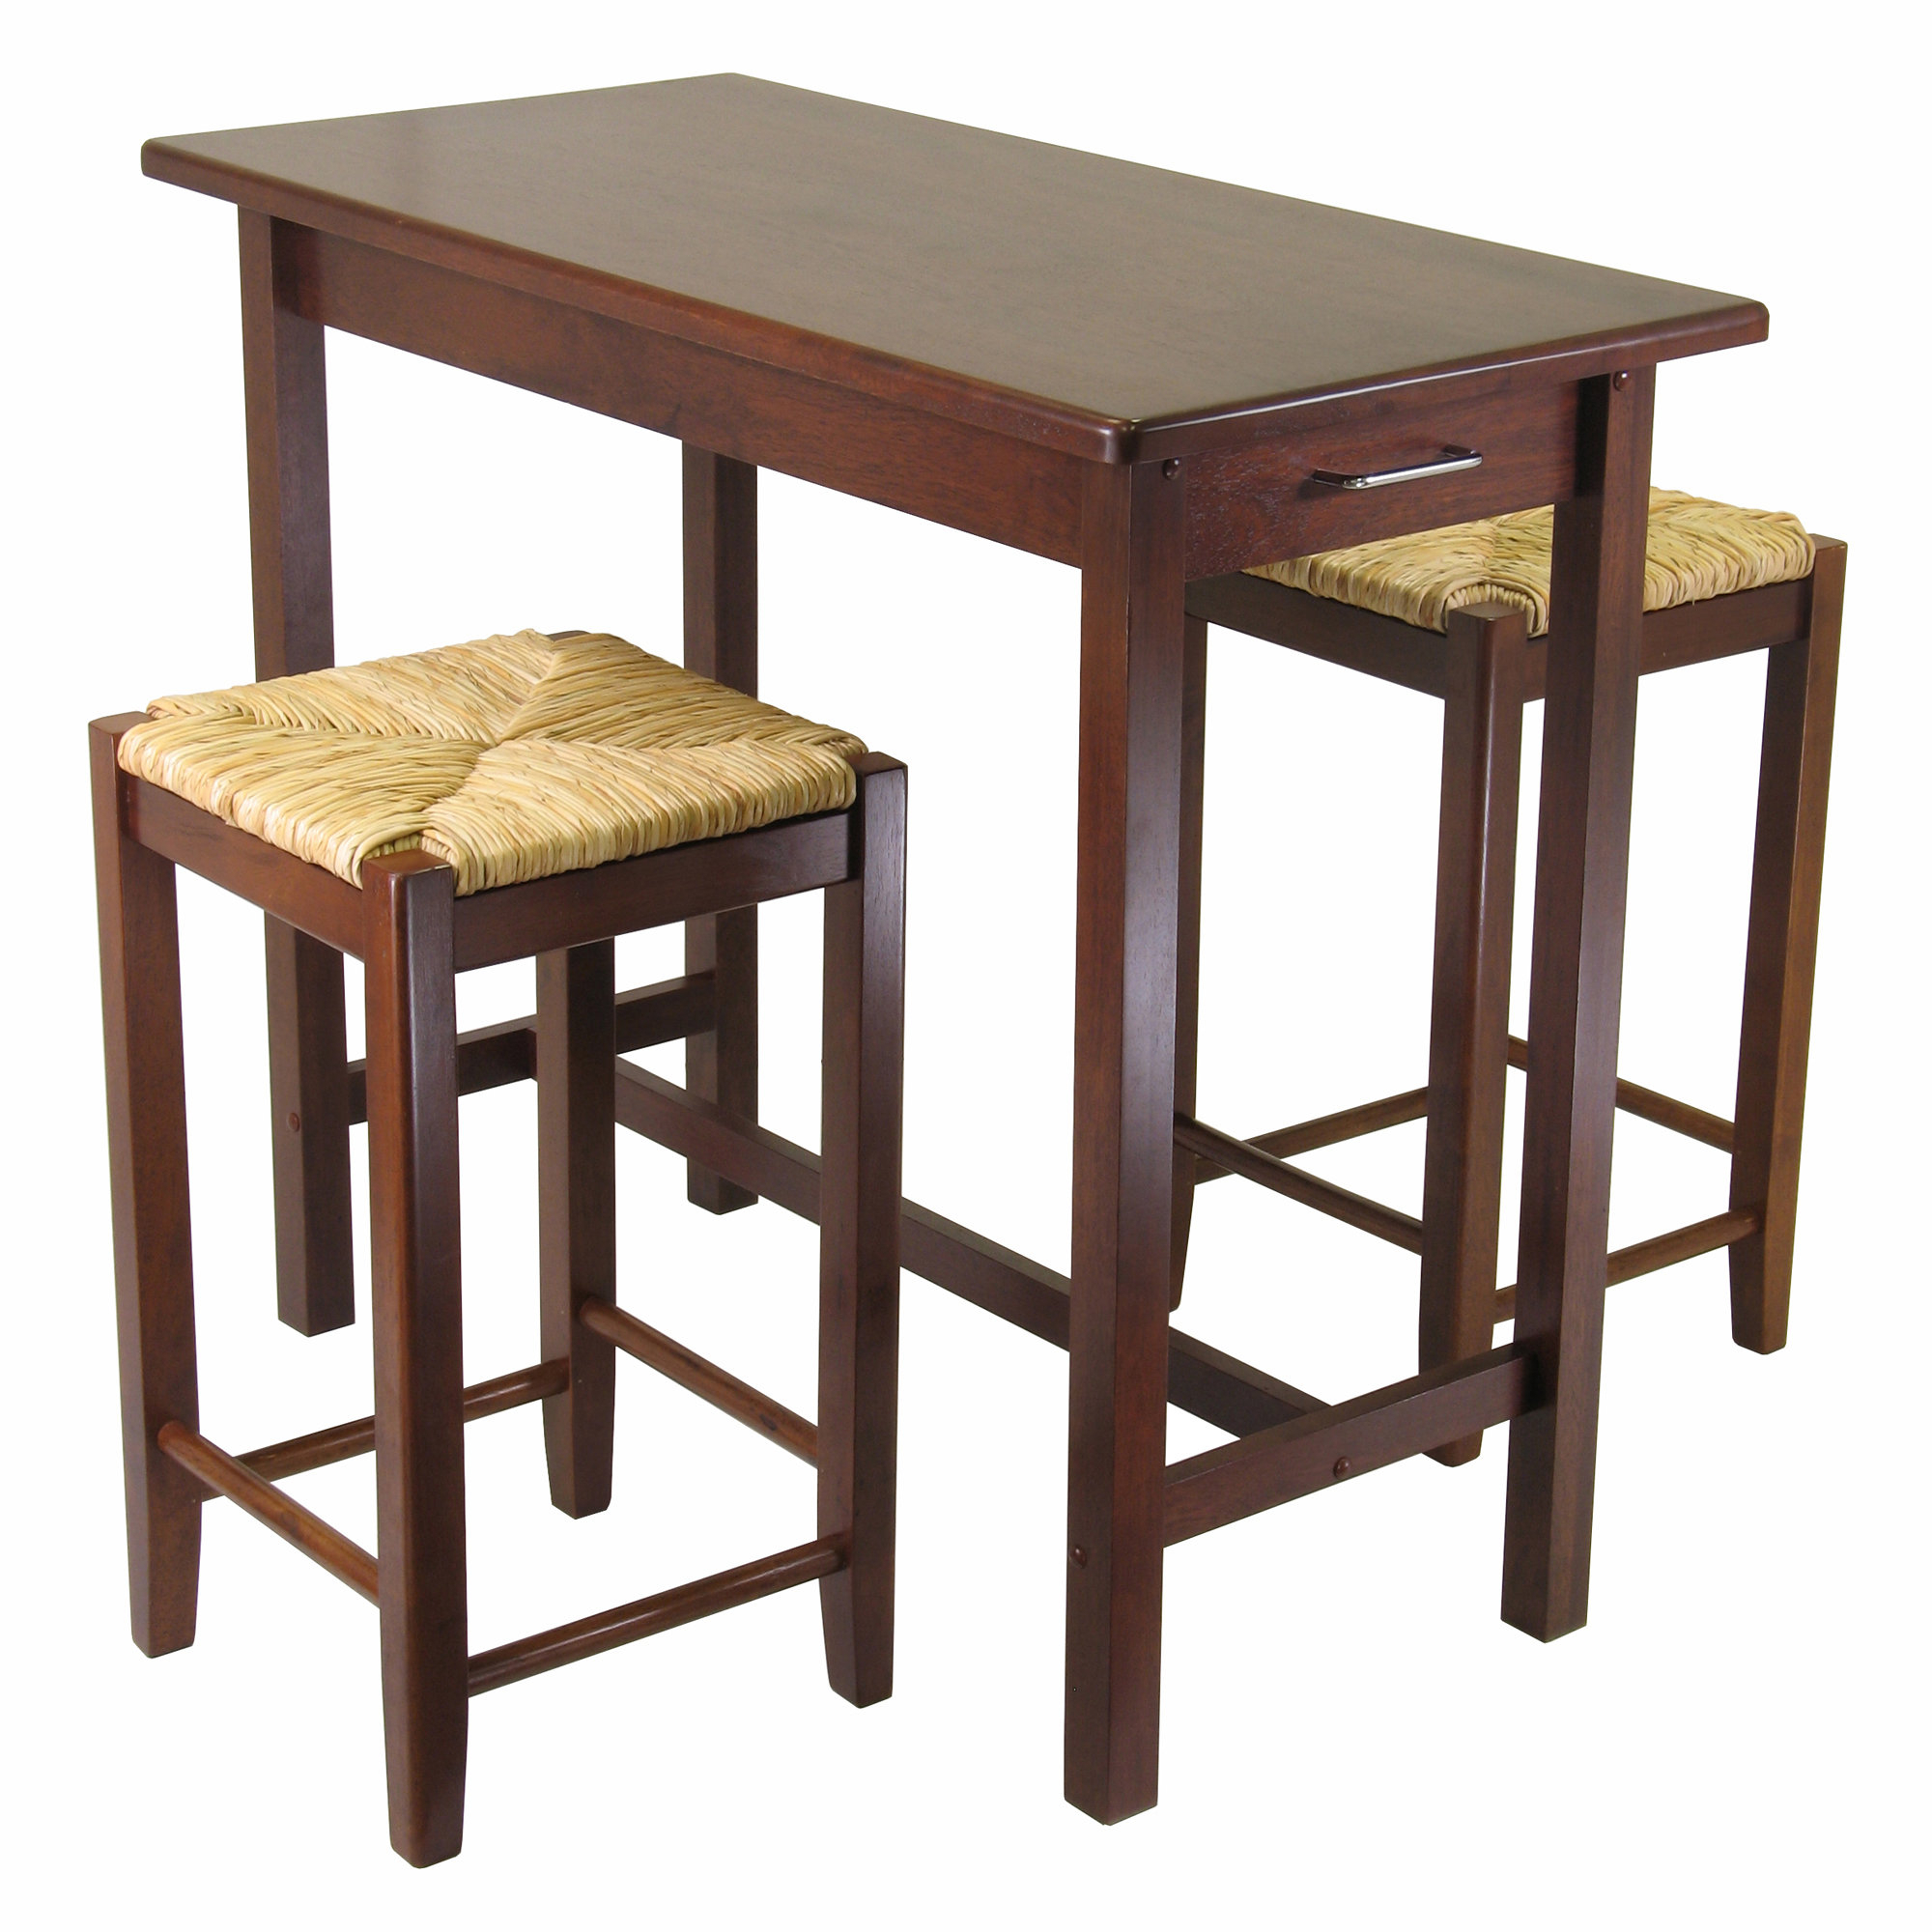 Winsome 3 Piece Counter Height Dining Set Inside Popular Bettencourt 3 Piece Counter Height Dining Sets (View 9 of 20)